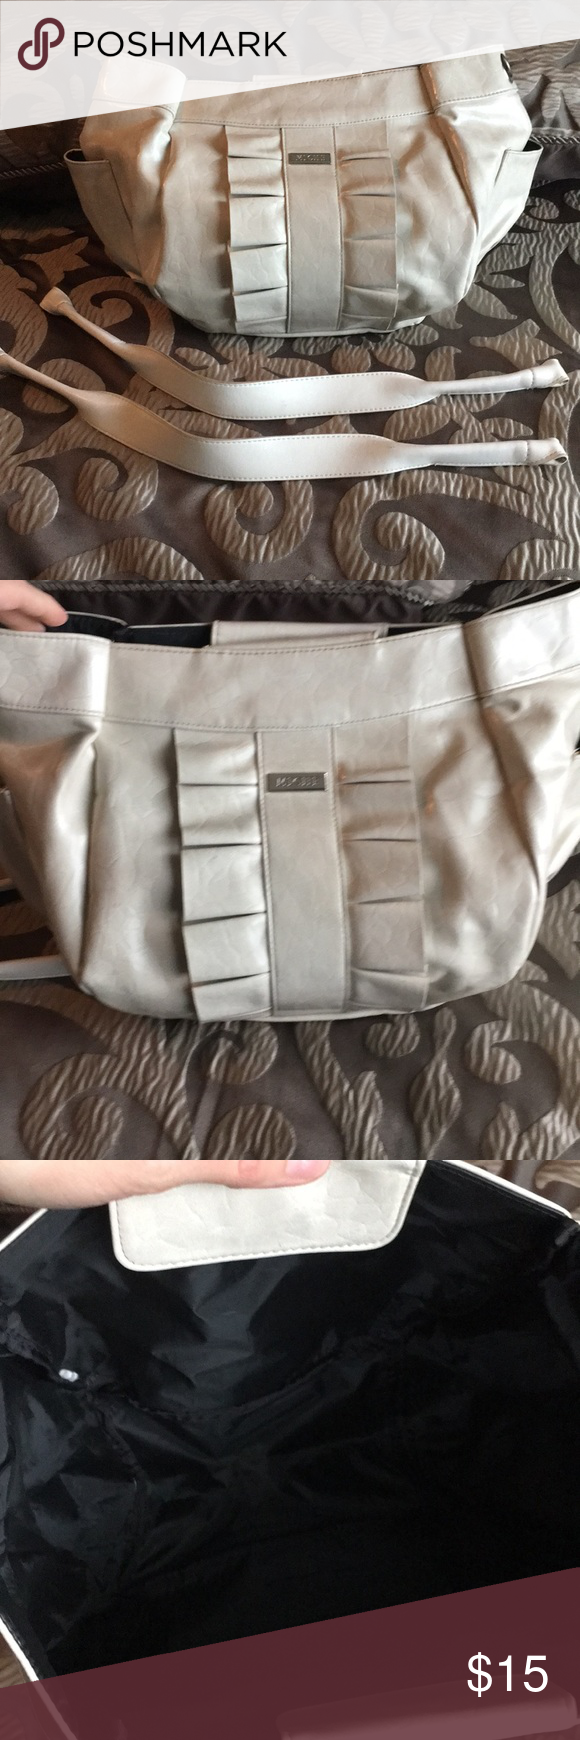 f281d287c Sell Used Miche Bags